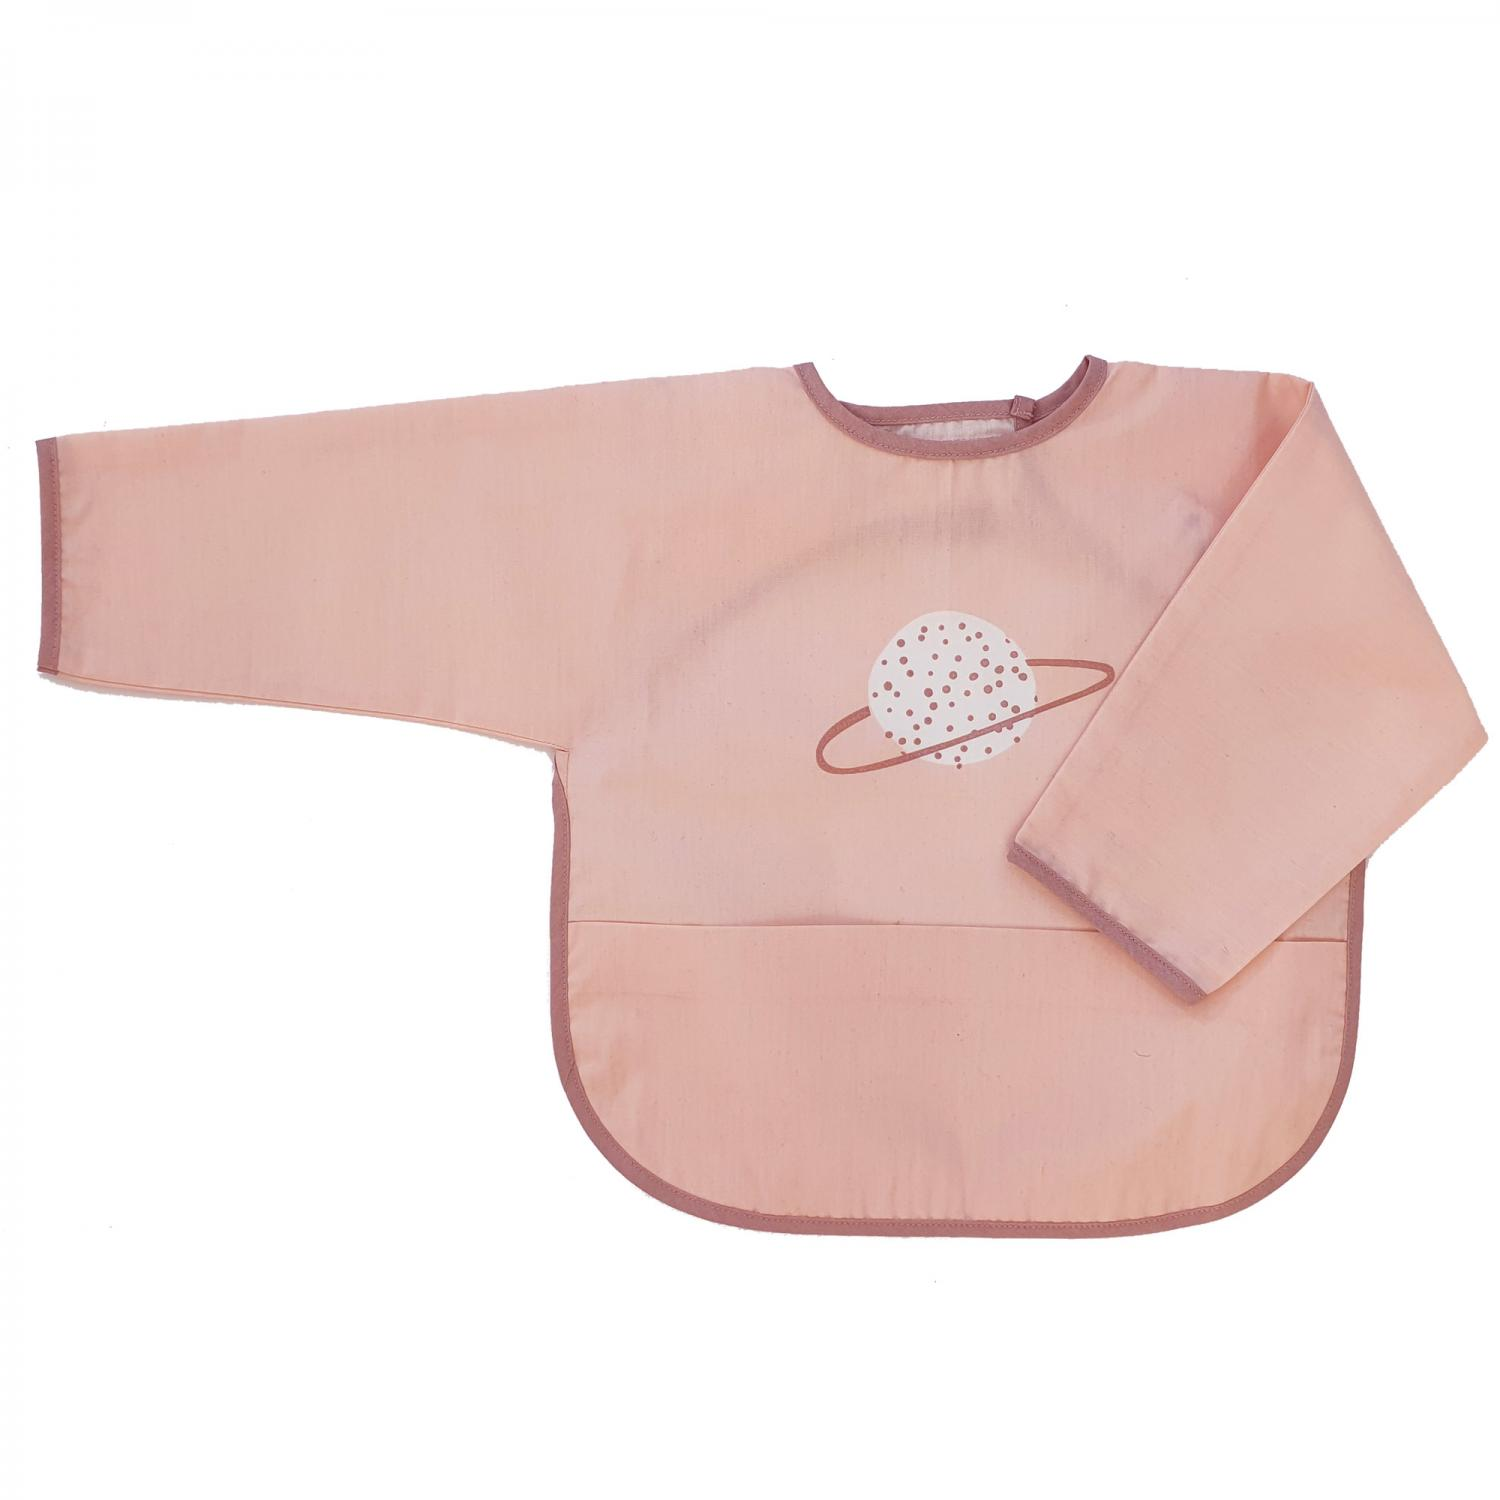 Bib with sleeves dusty rose planet